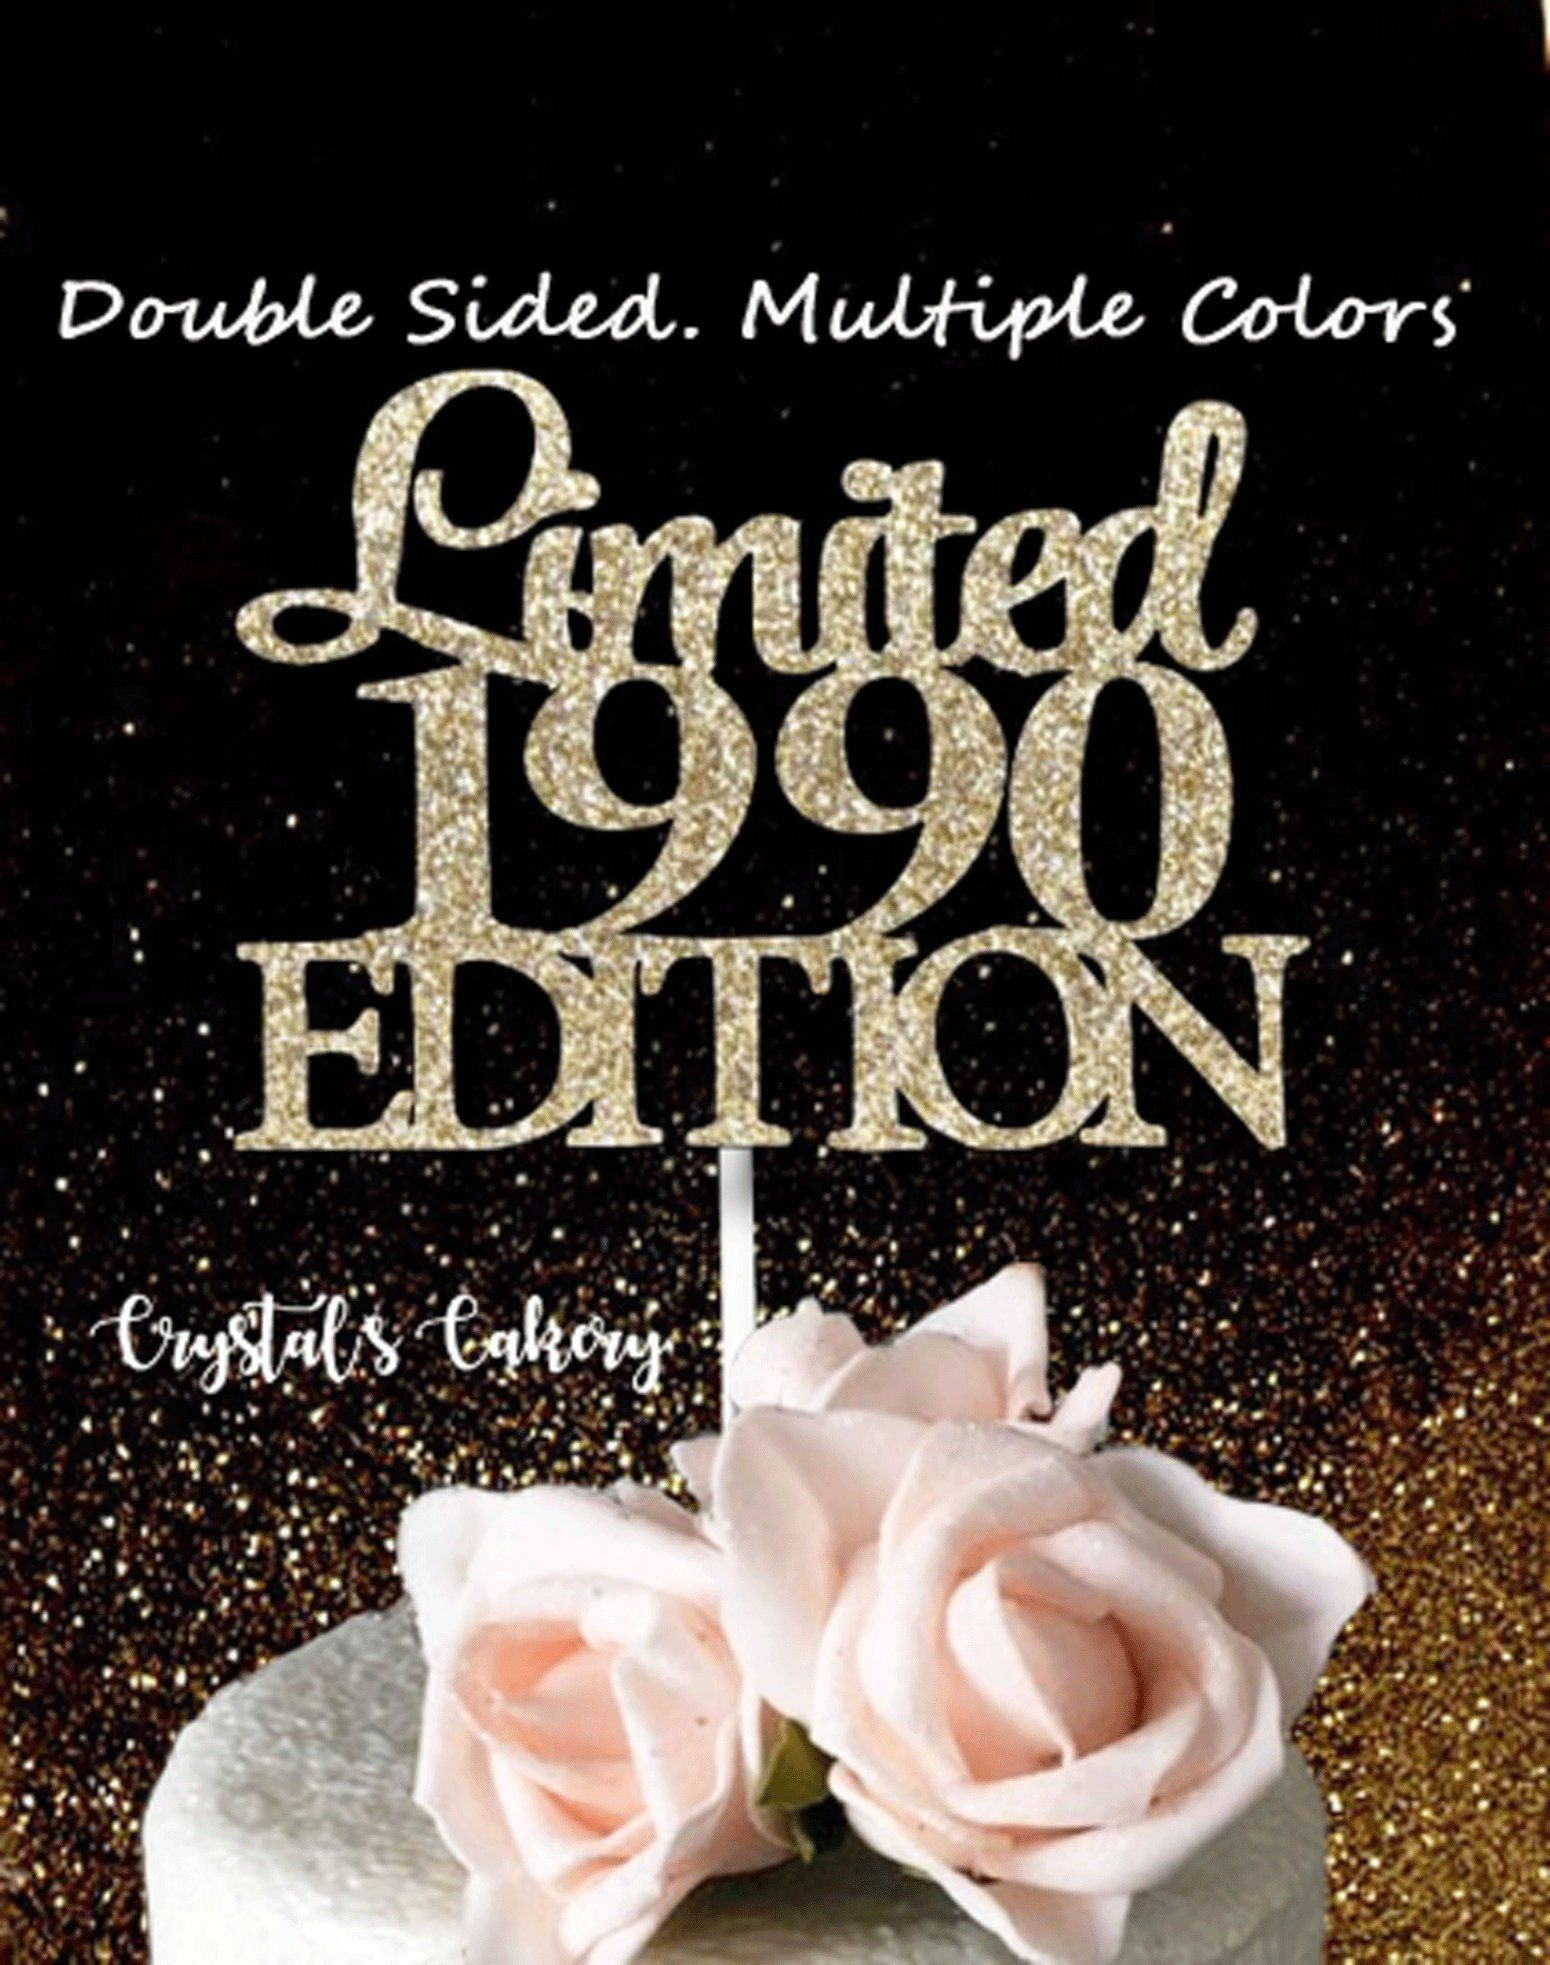 Limited Edition Glitter Cake Topper 1990 1990 Cake Topper 28th